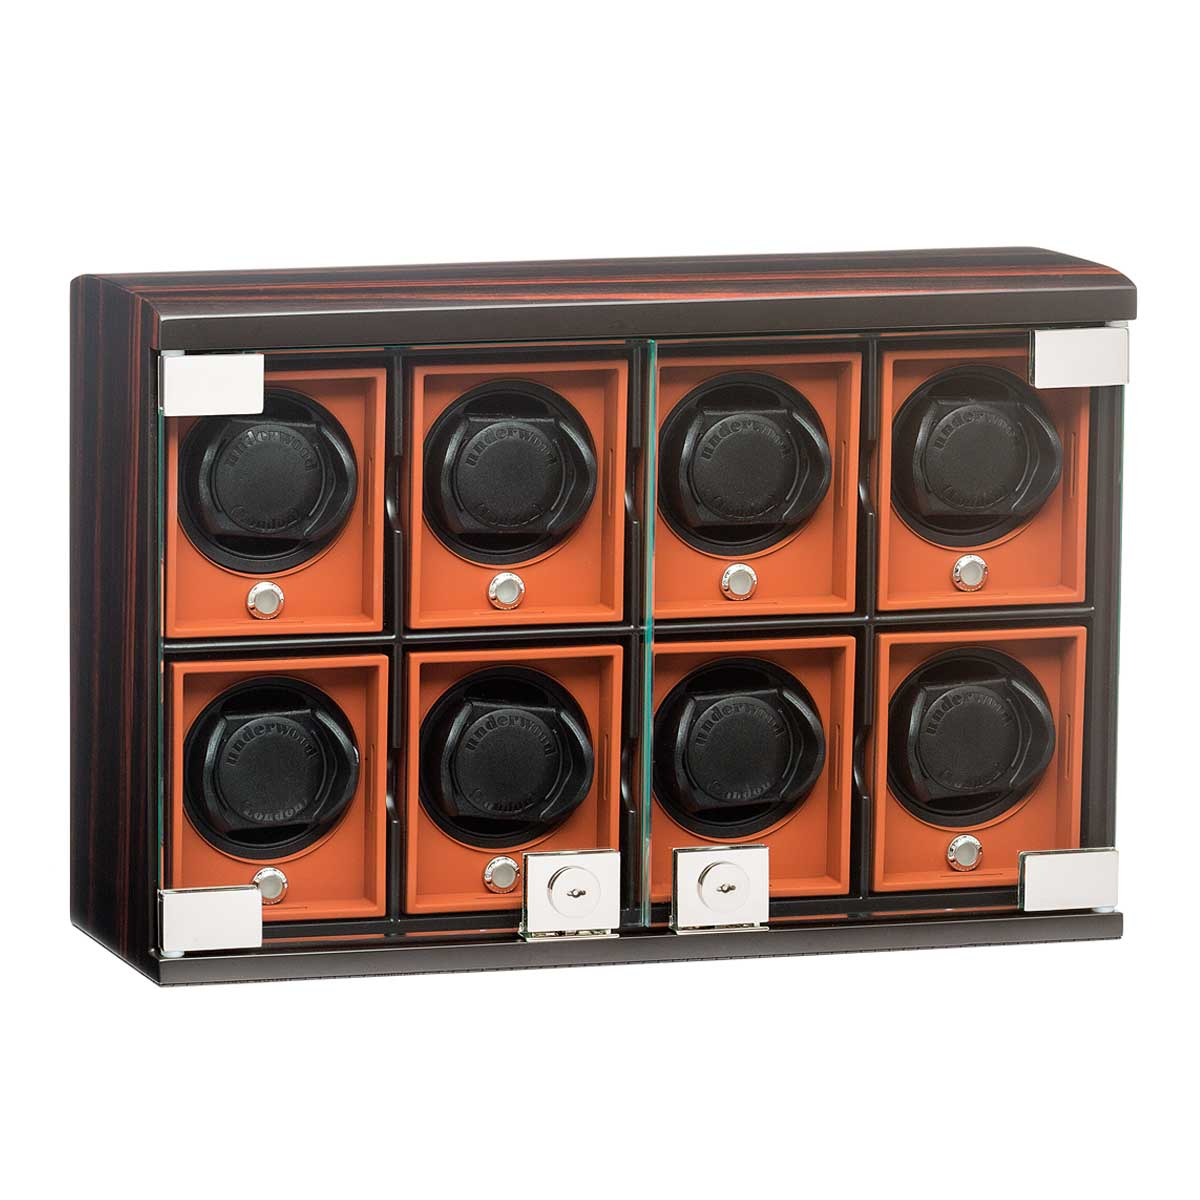 Underwood Eight Module Watch Winder Unit - Macassar